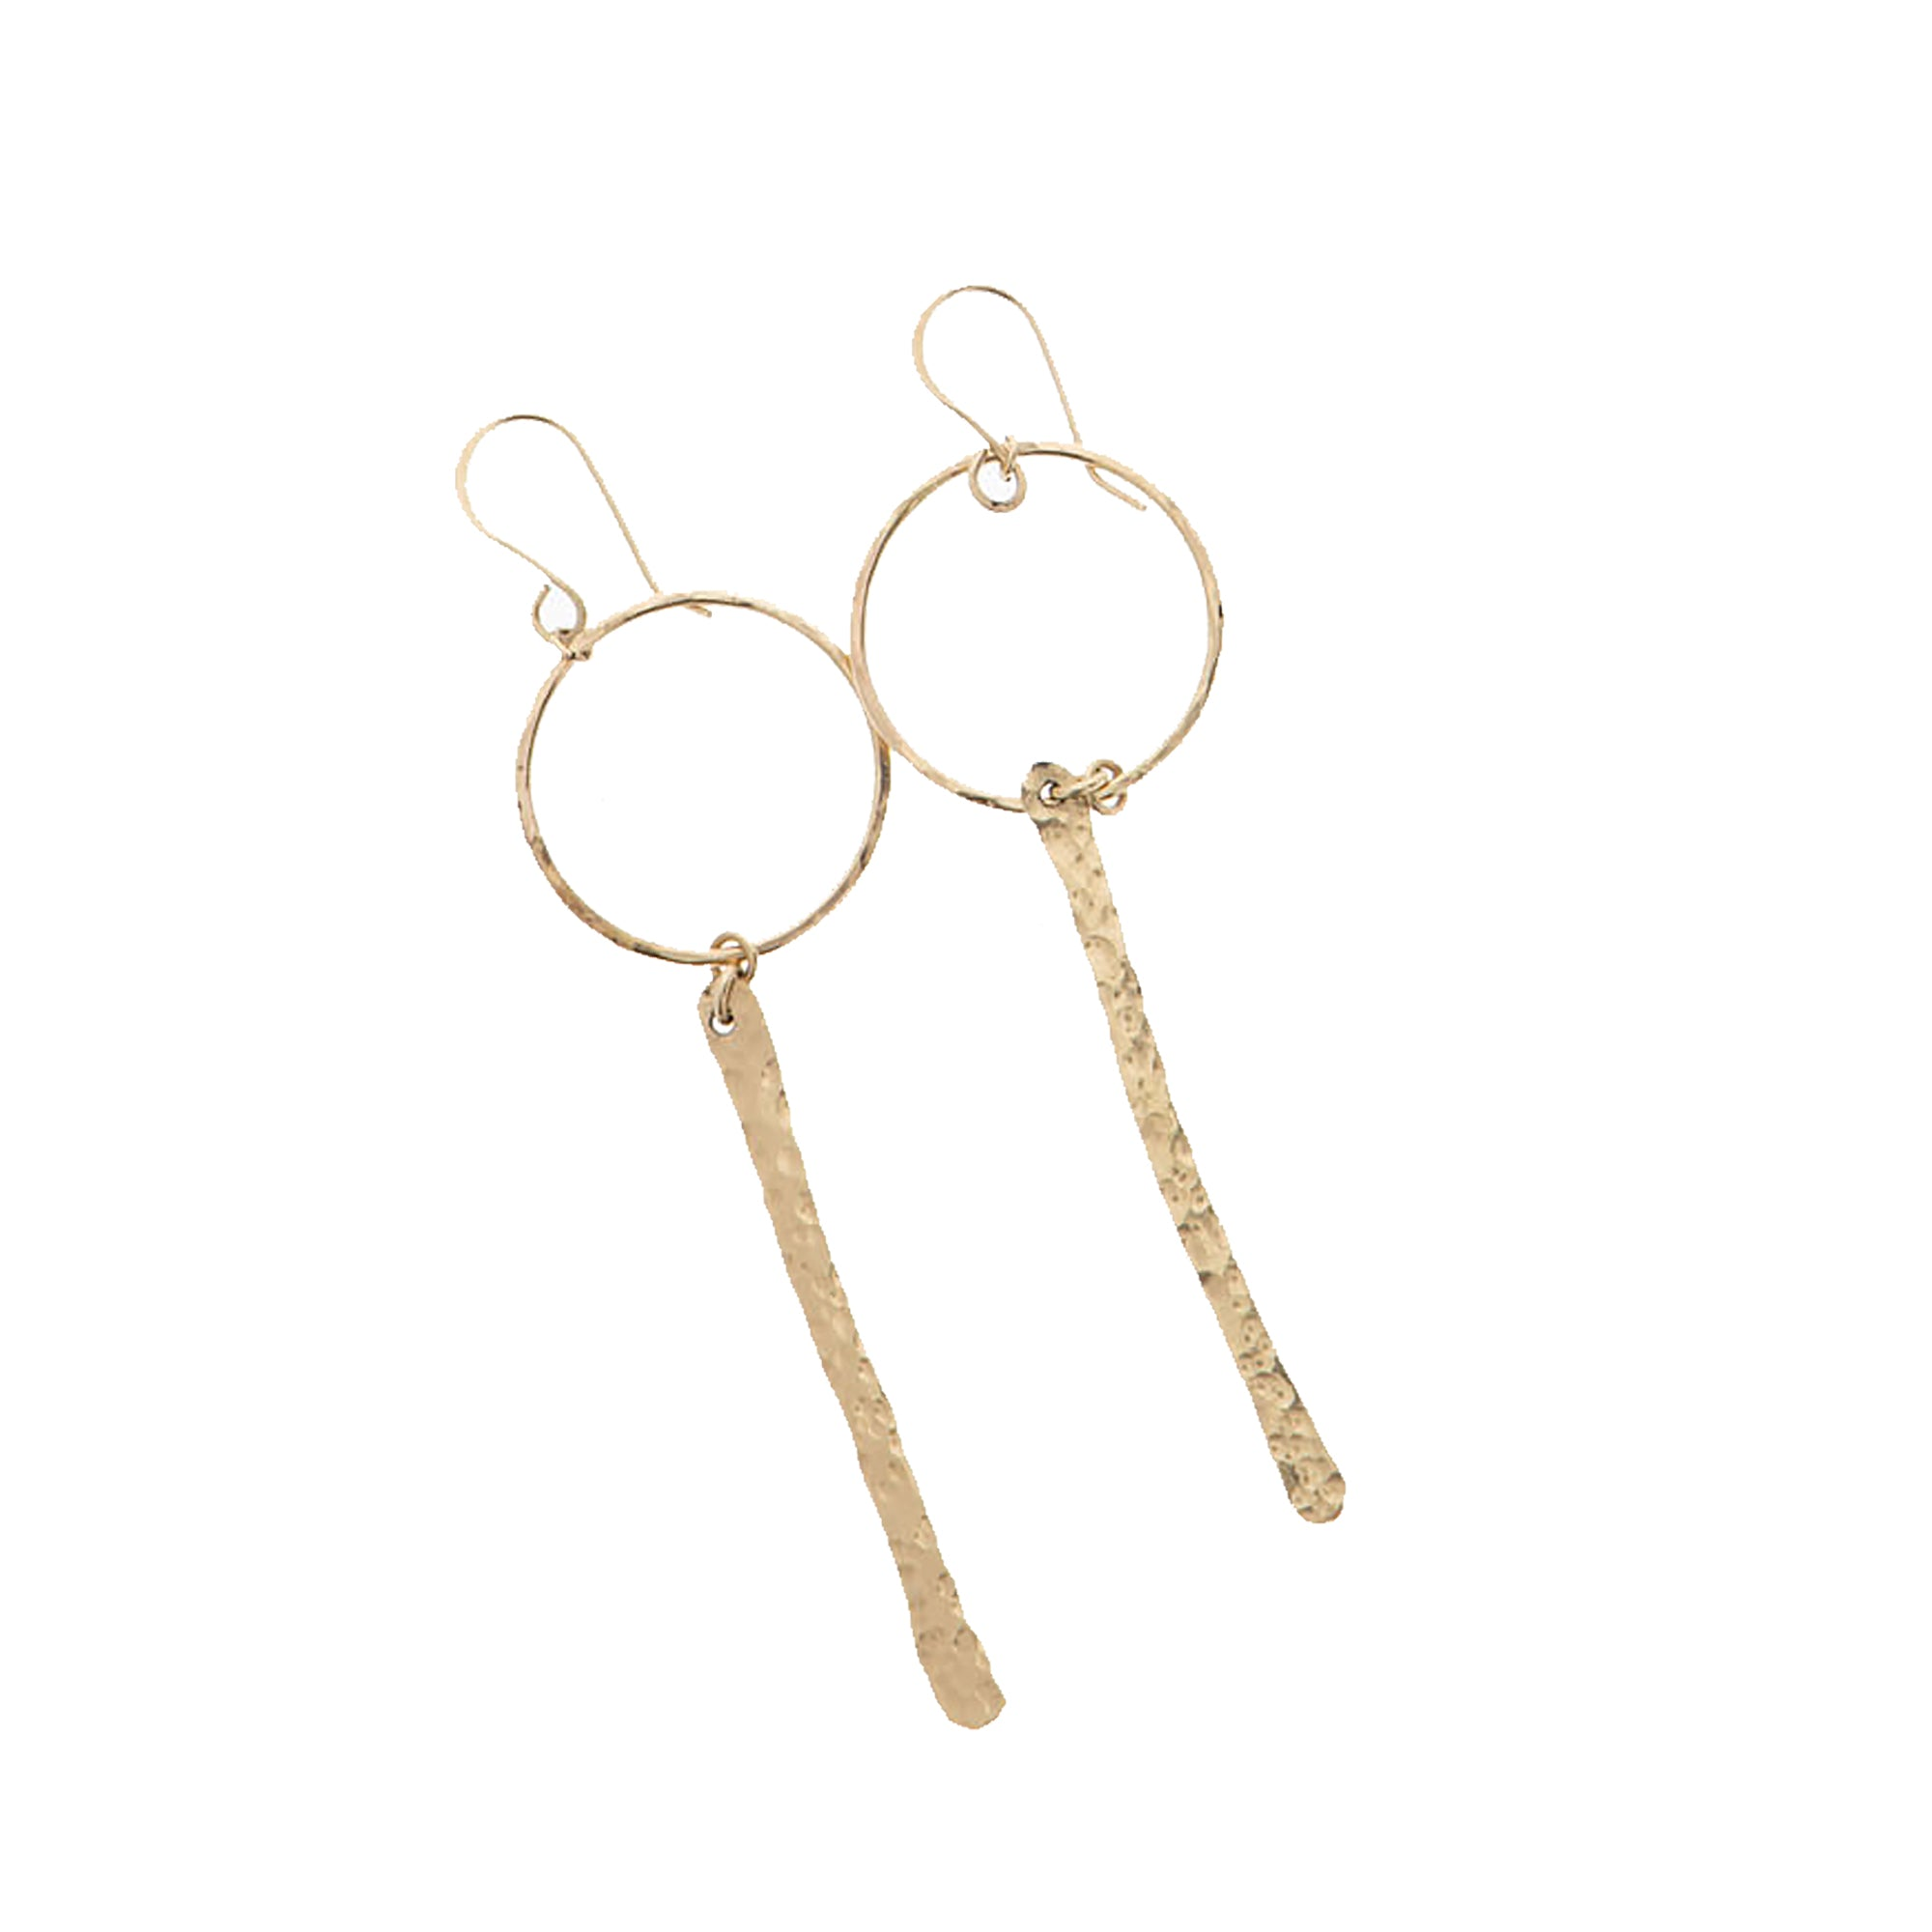 Luna Hoop Earrings - 21 Degrees North Designs - 21ºN